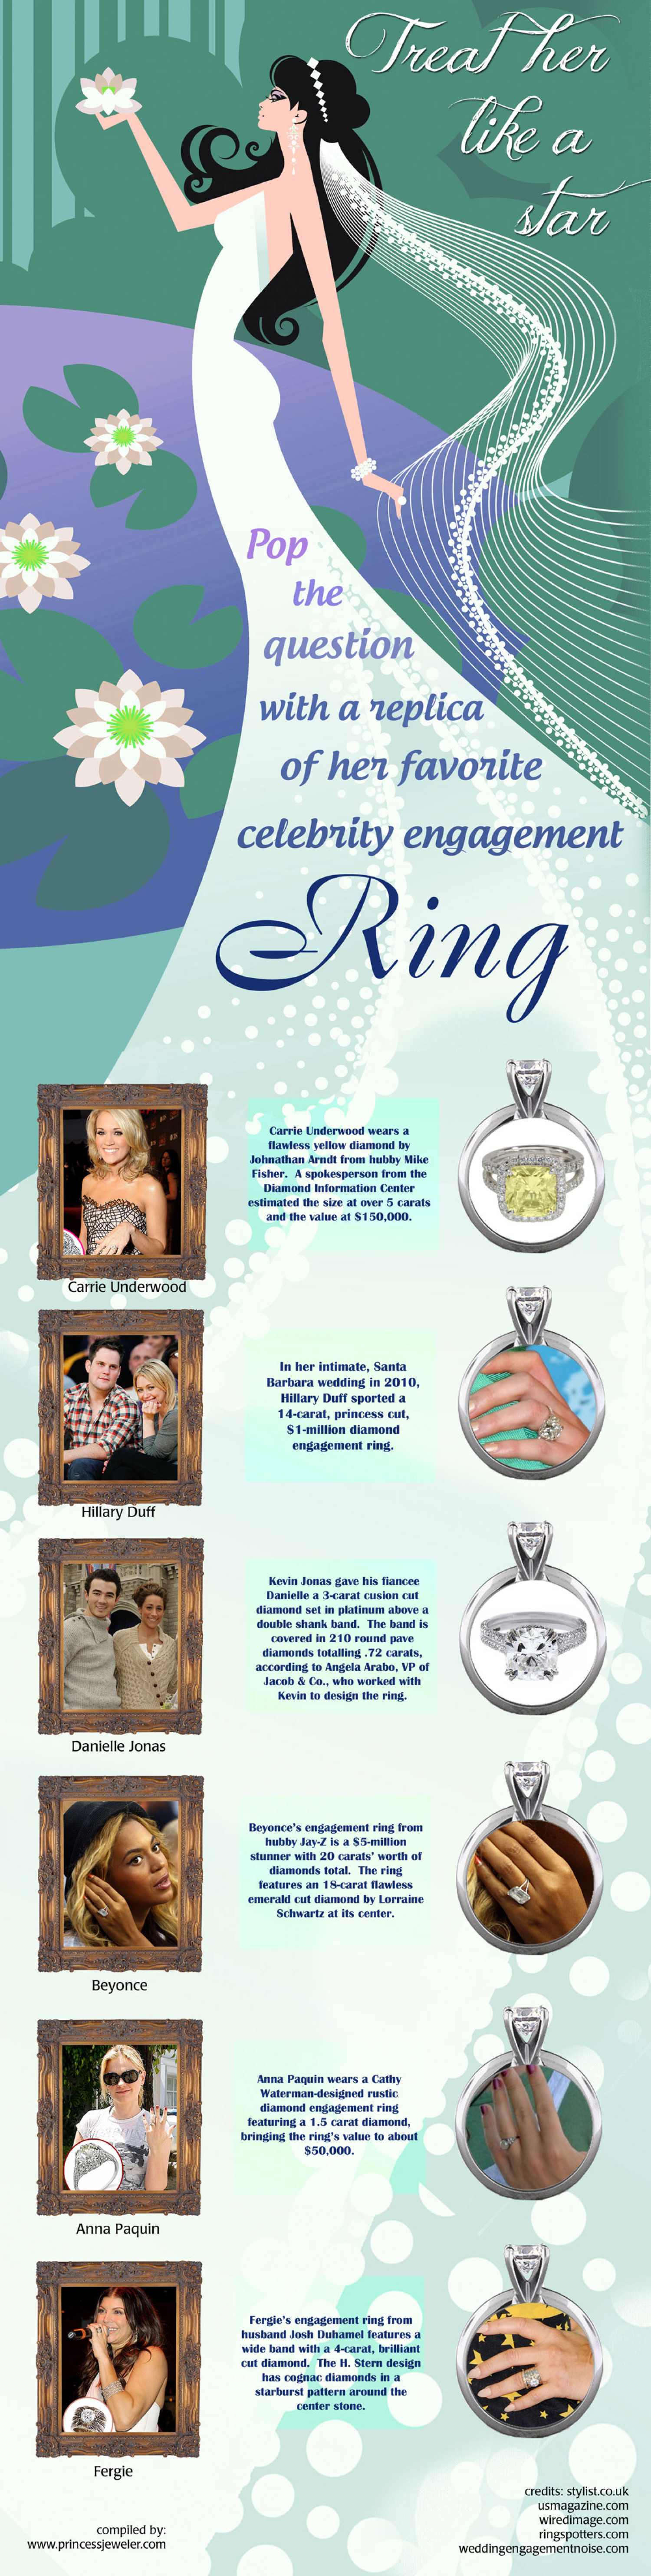 Celebrity Engagement Rings - Treat Her Like a Star Infographic